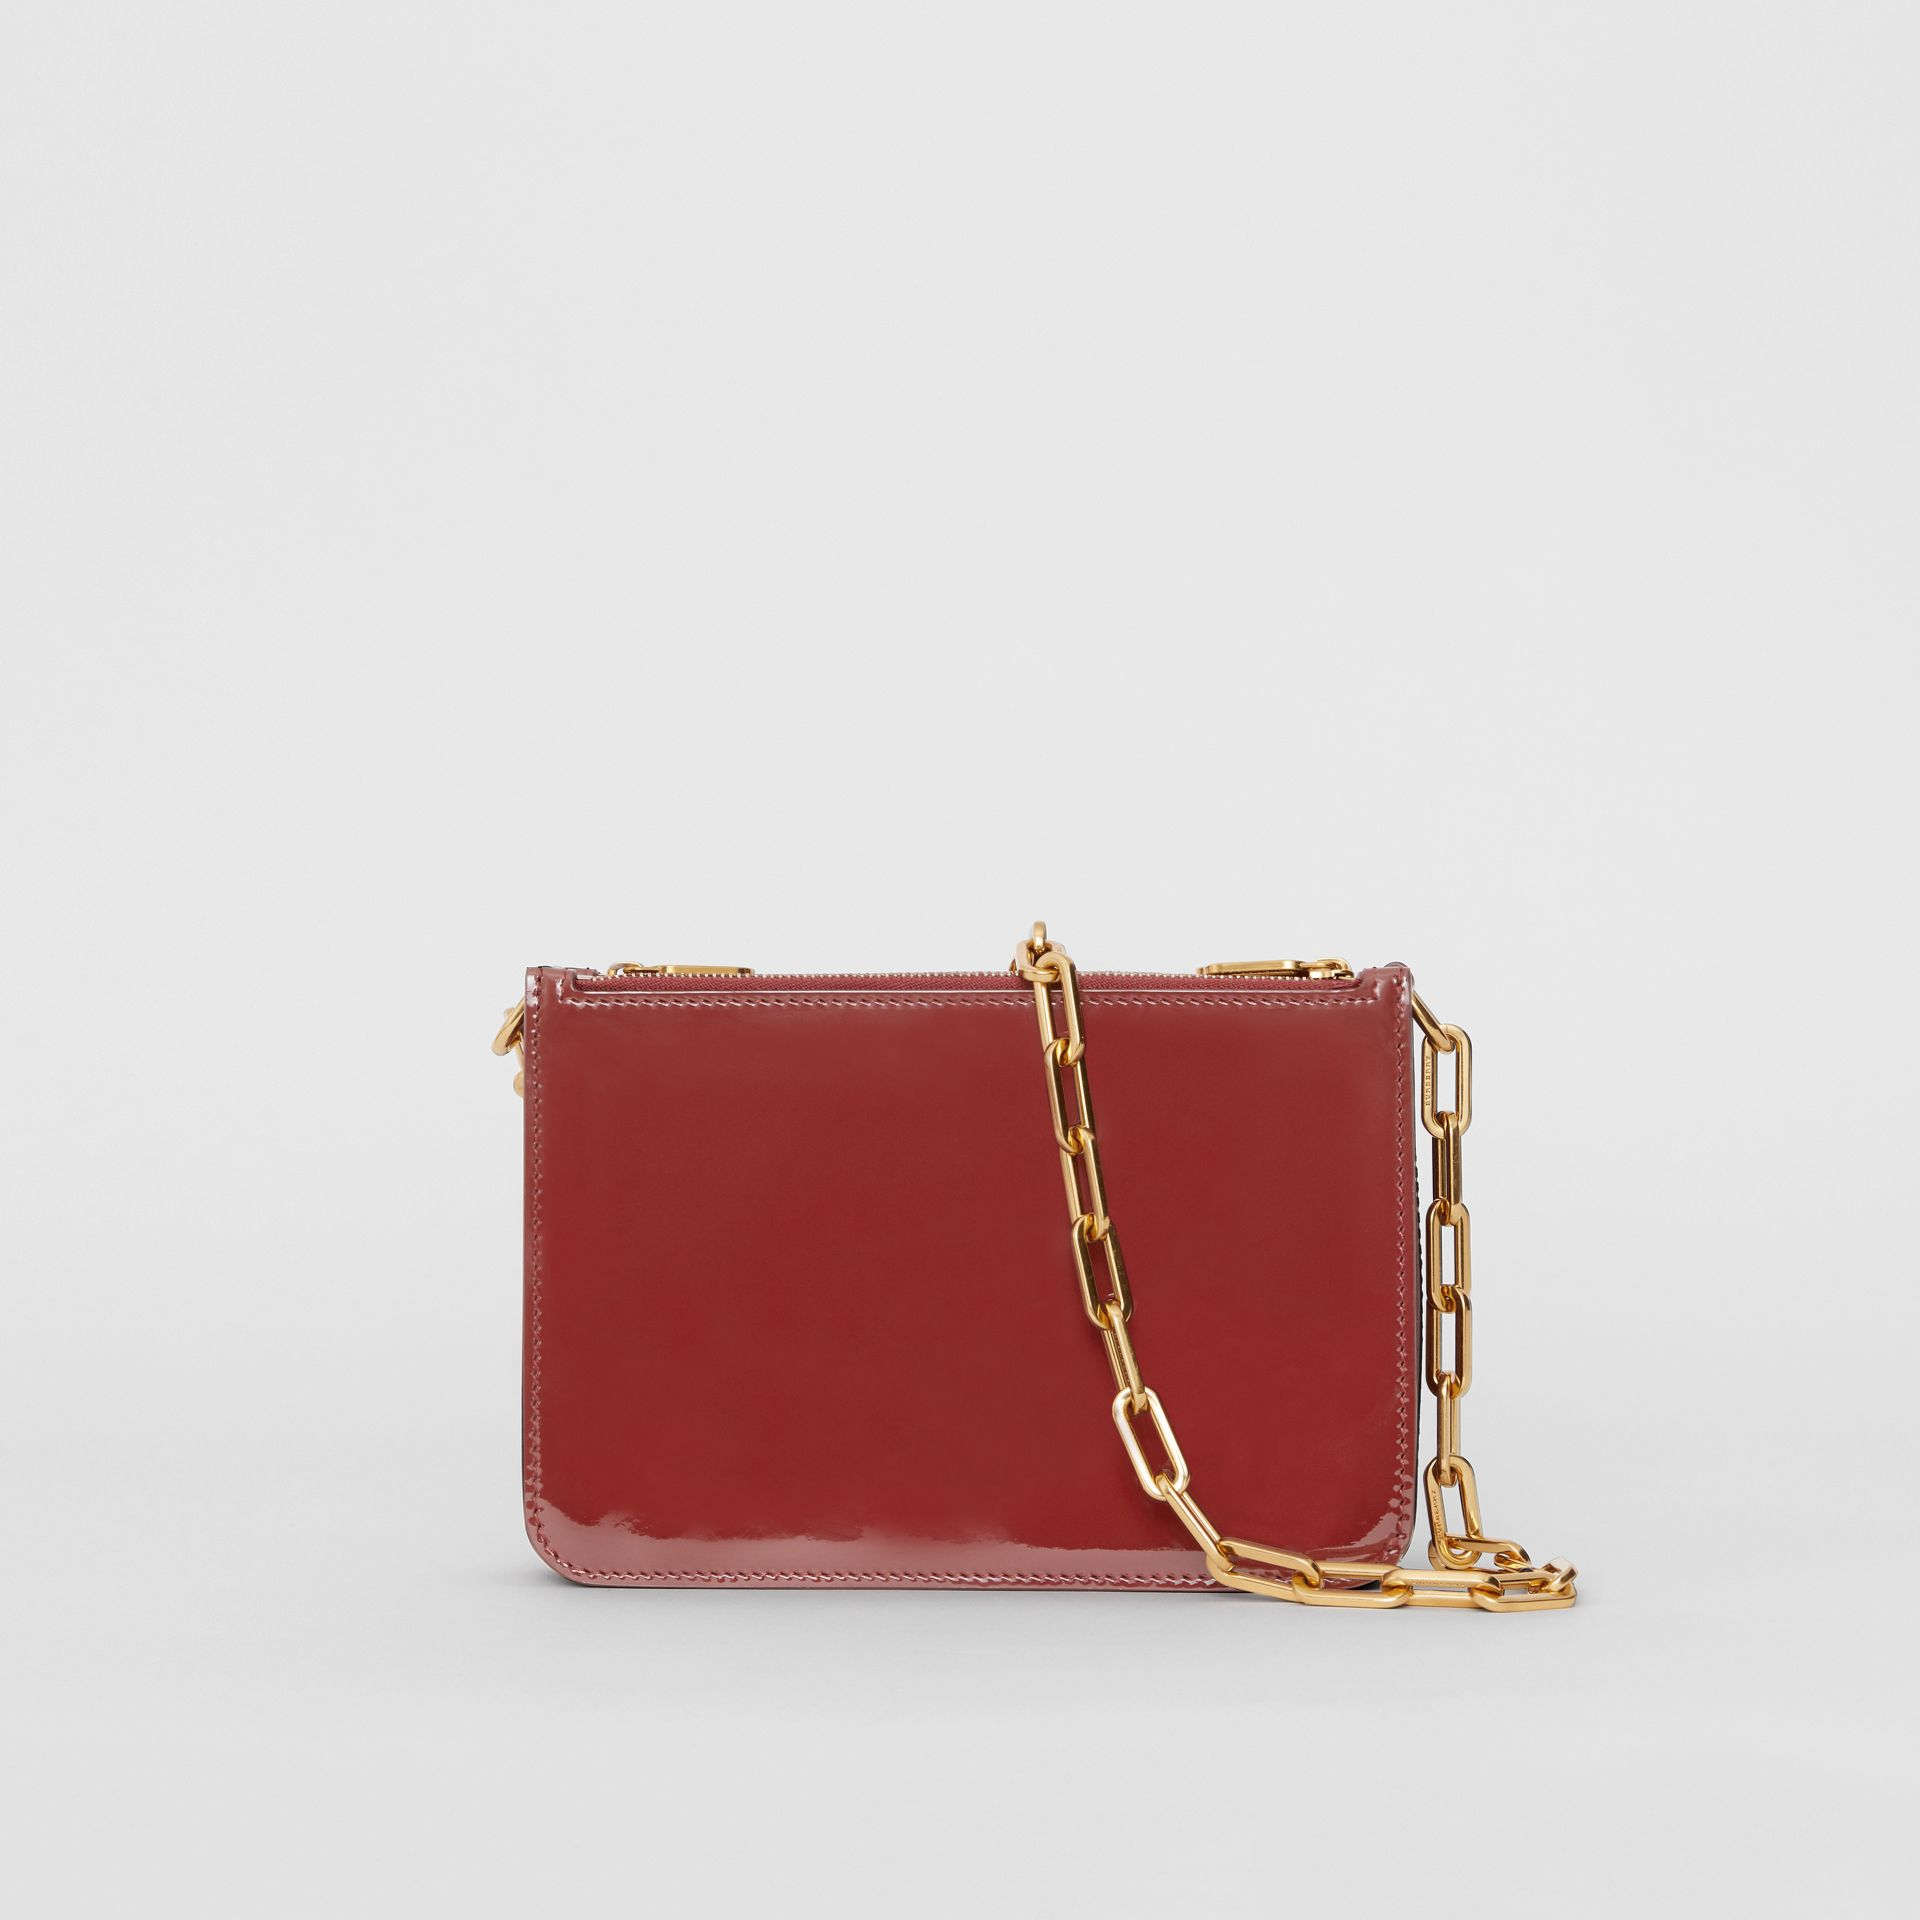 Triple Zip Patent Leather Crossbody Bag in Crimson - Women | Burberry Canada - gallery image 7